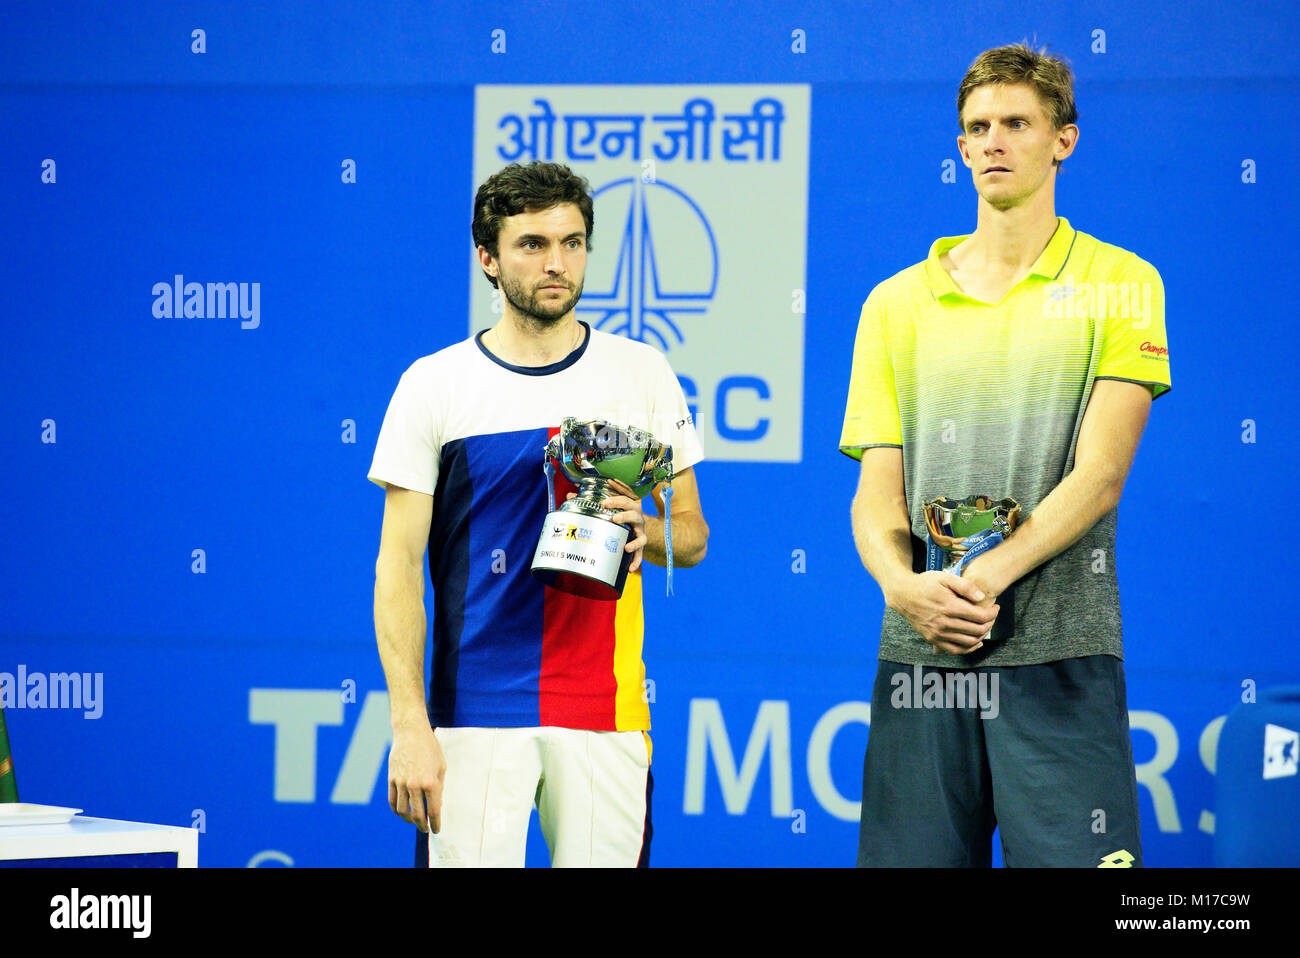 Pune, India. 6th January 2018. Gilles Simon of France and Kevin Anderson of South Africa after the finals at Tata Stock Photo